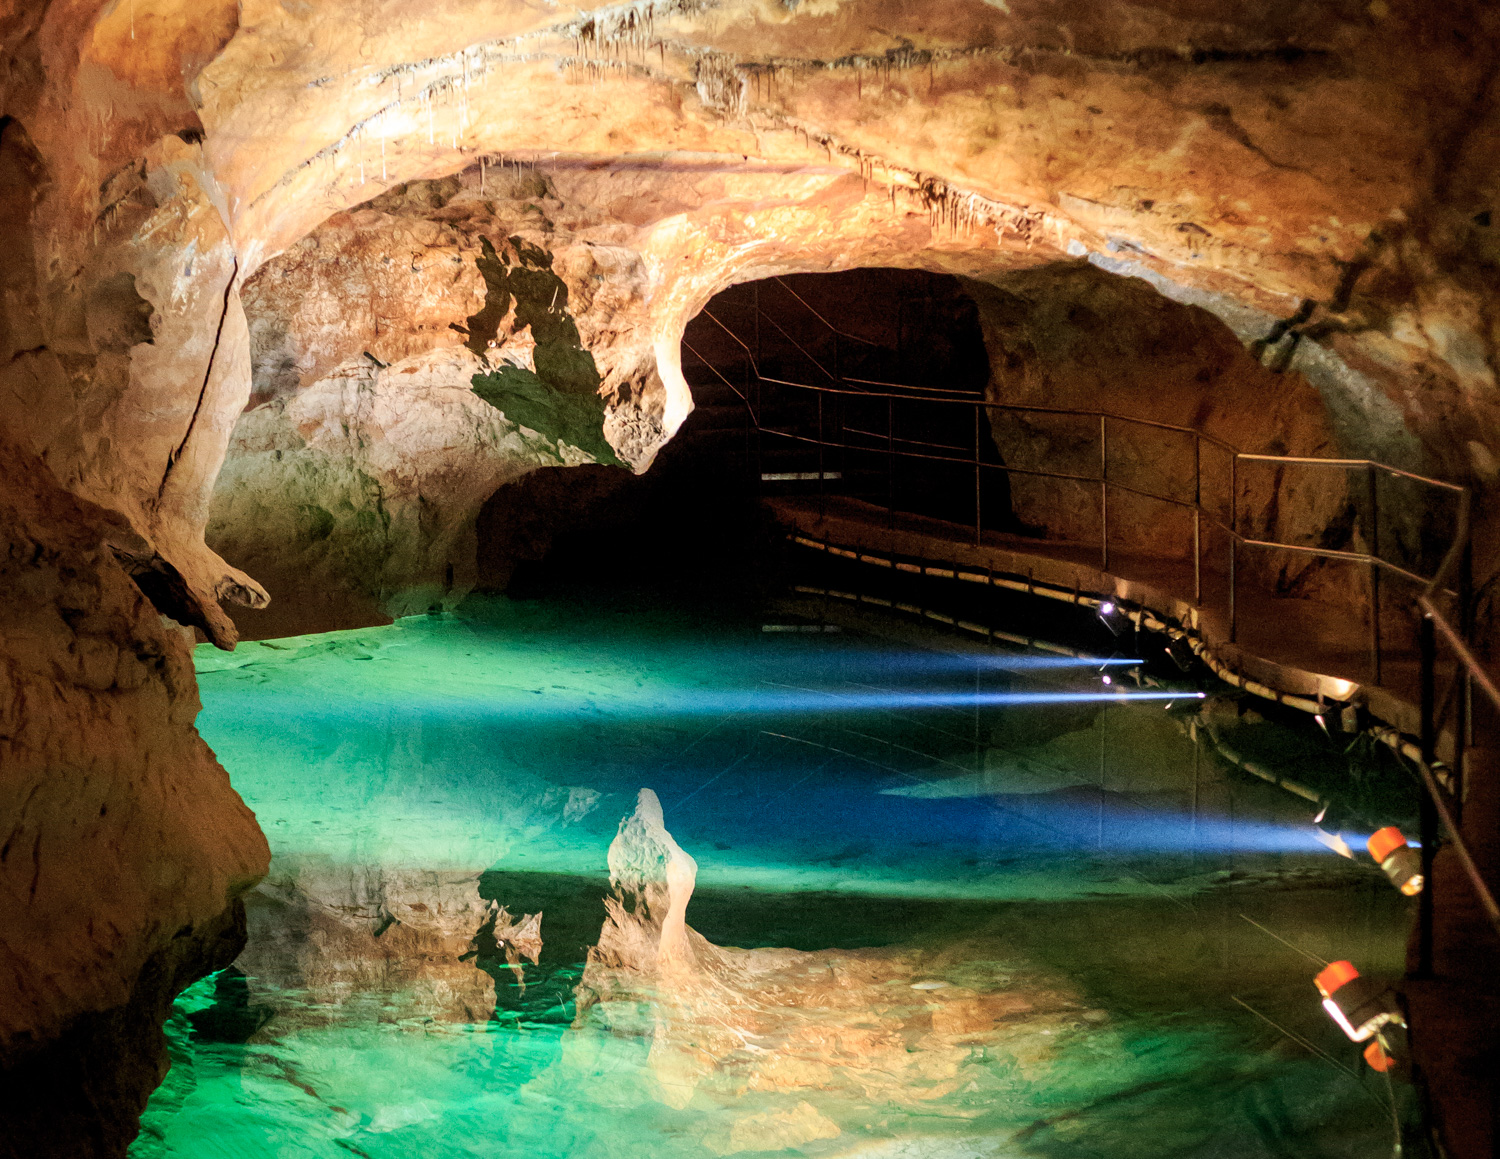 Day trip to Jenolan Caves - River cave